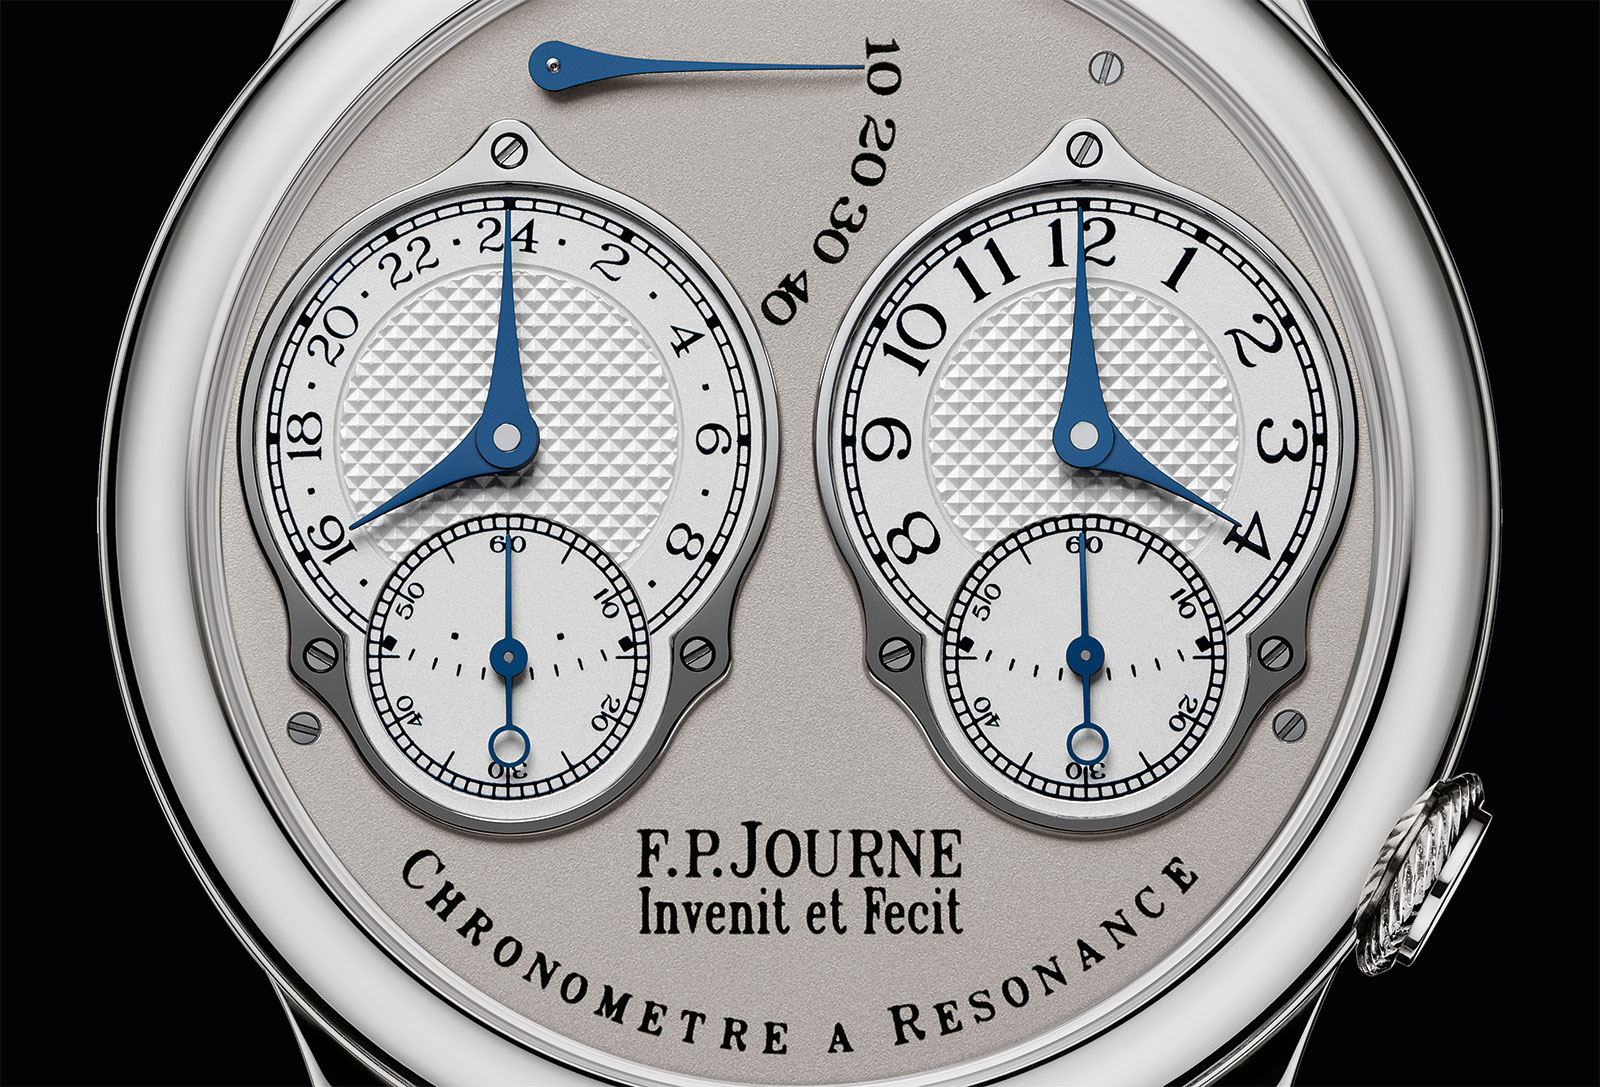 FP Journe Resonance 24 hour 2019 5